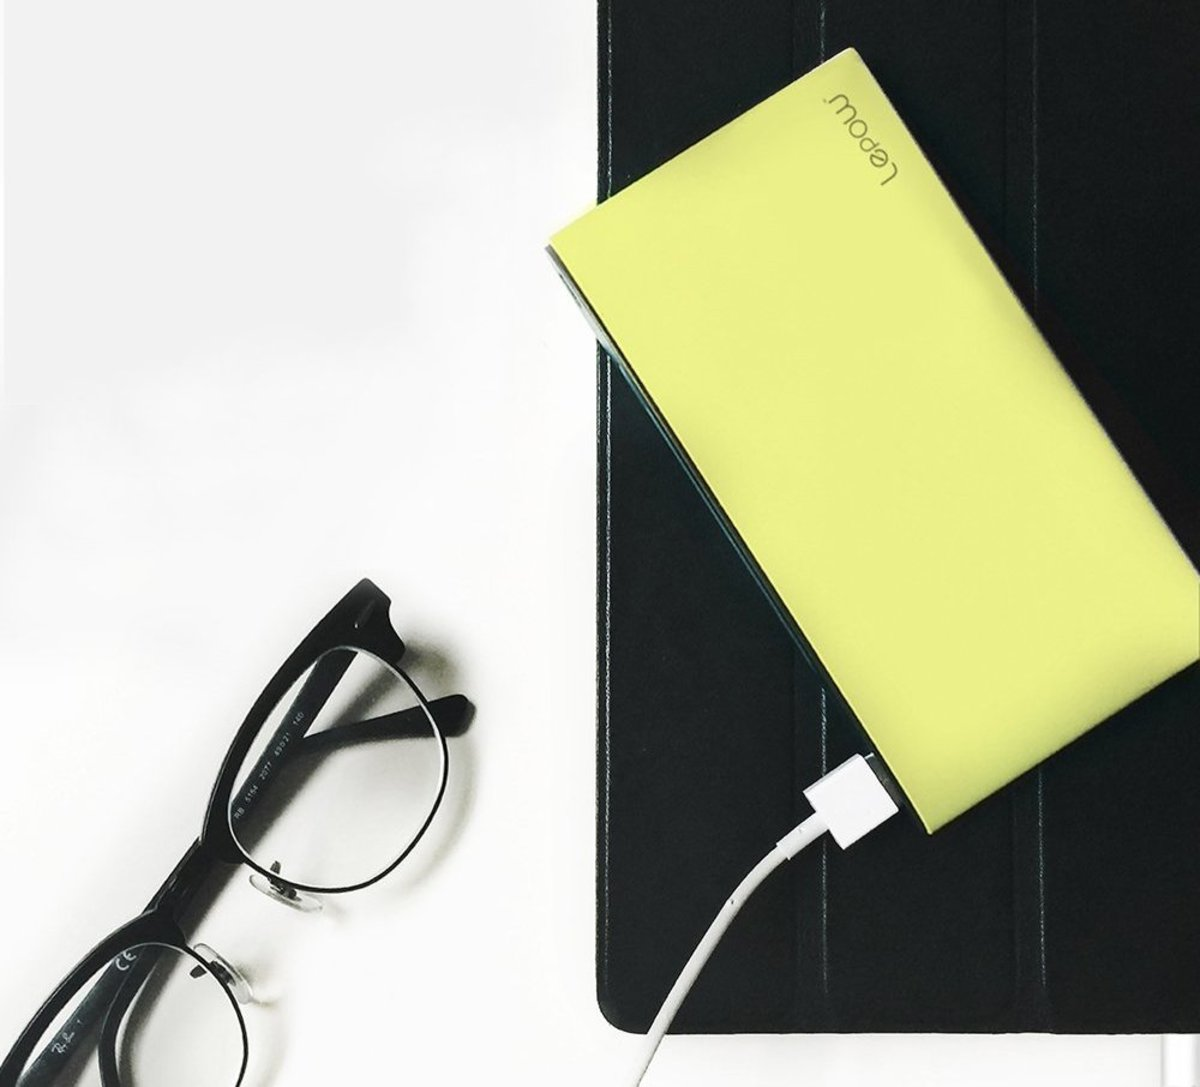 Very sleek, slim and lightweight portable charger for the mom on the go.